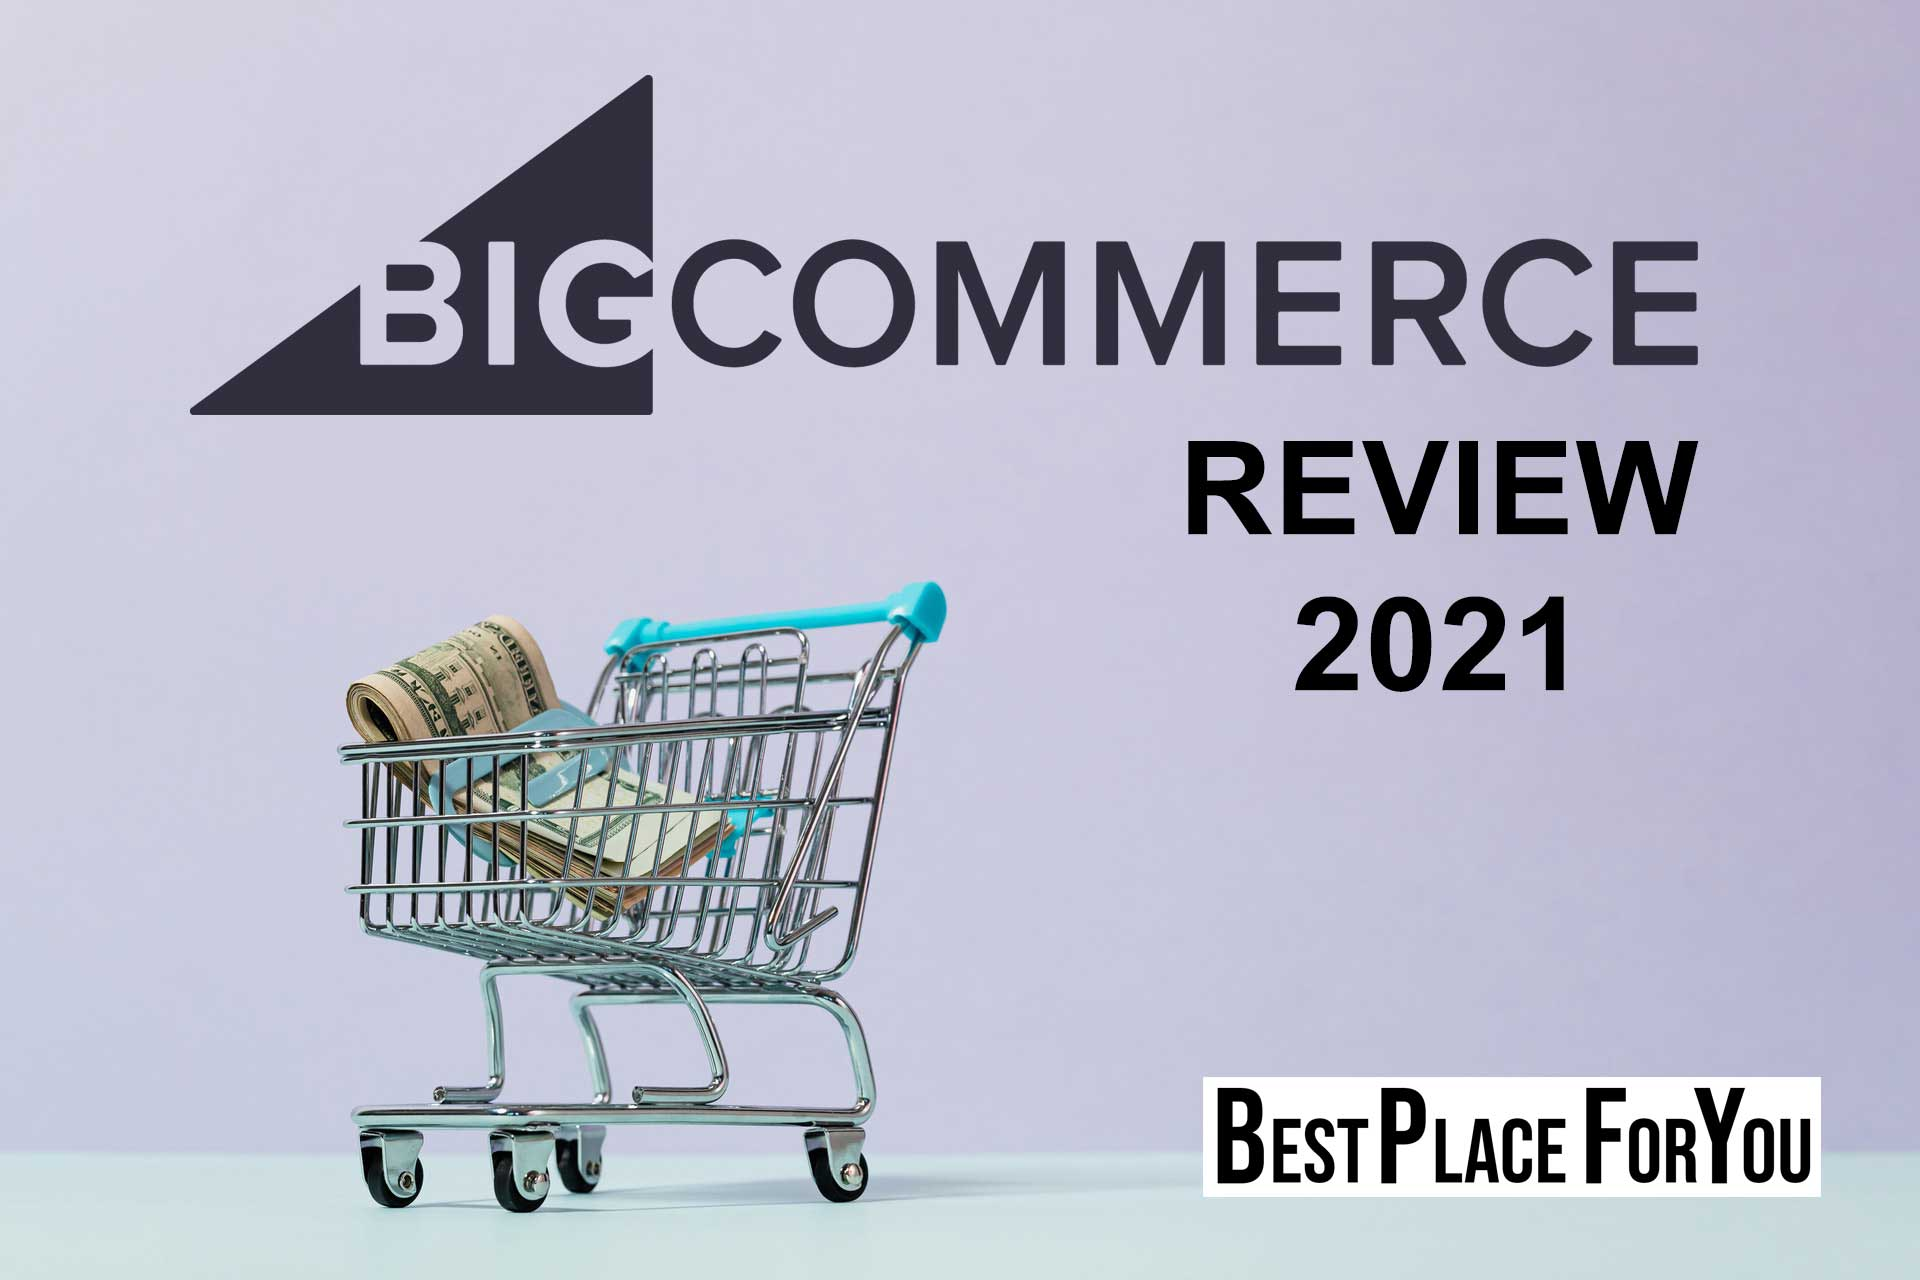 BigCommerce Review 2021